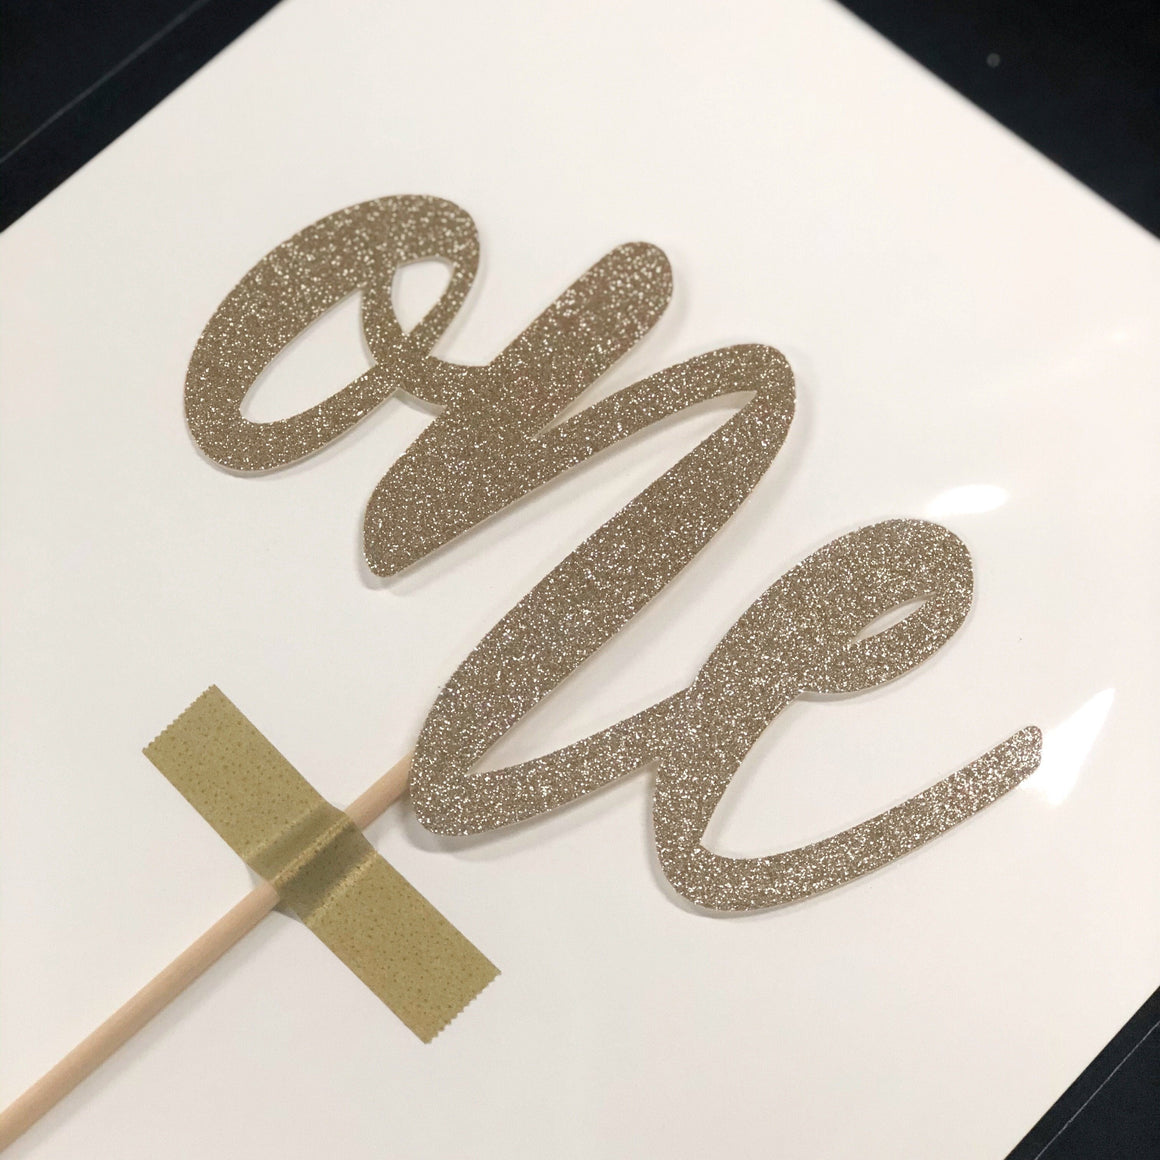 CAKE TOPPER - ONE CHAMPAGNE SPARKLE LIMITED EDITION